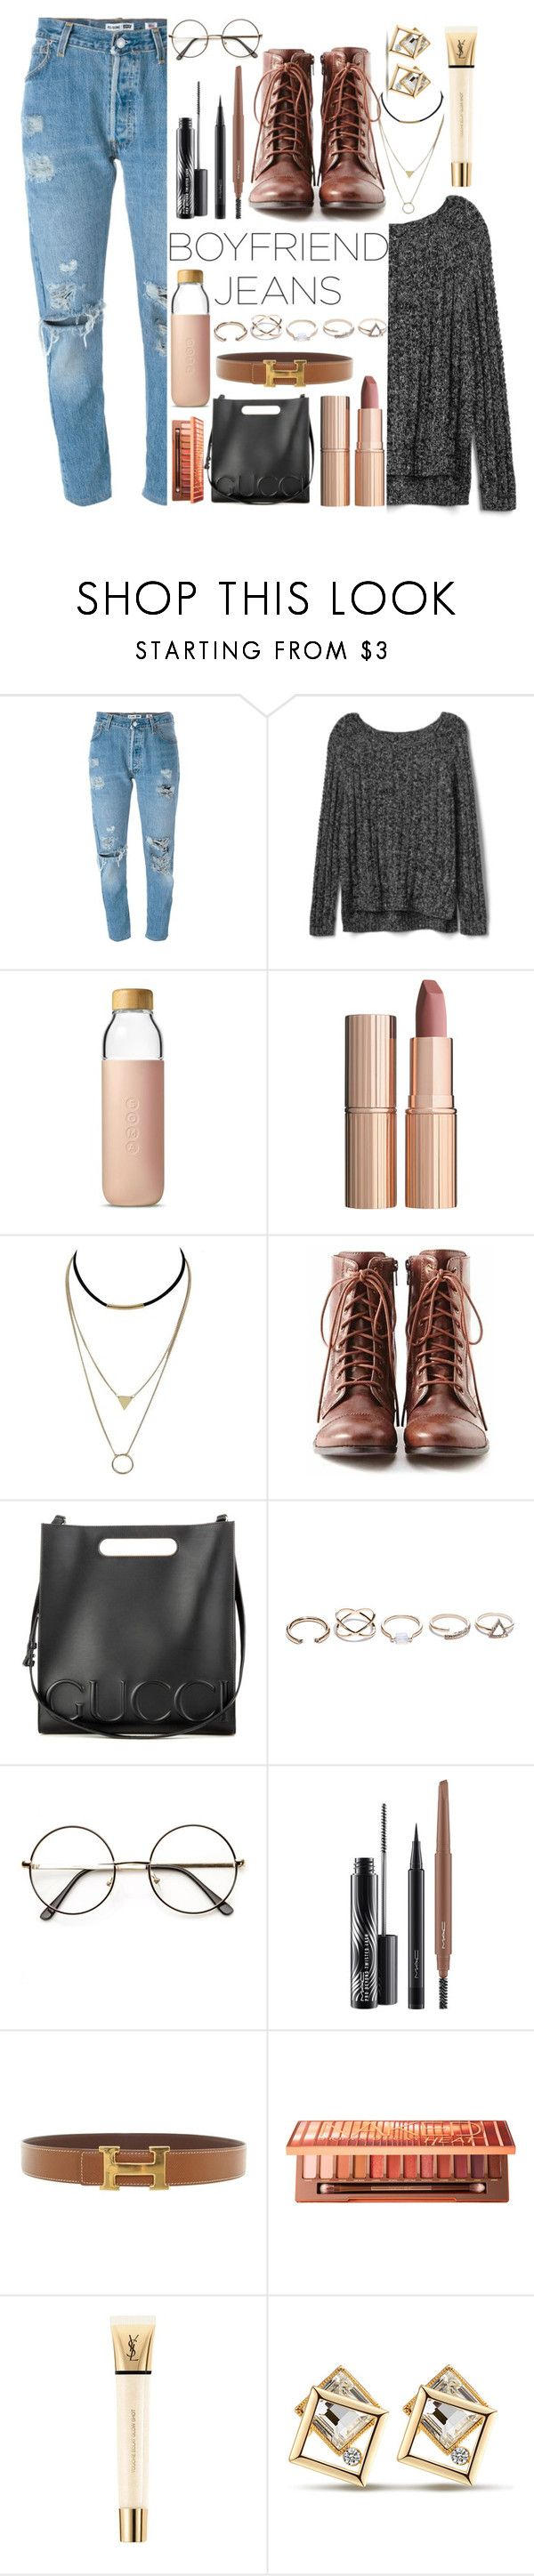 """It's too  cold un México"" by meli111 on Polyvore featuring Levi's, Gap, Soma, Charlotte Tilbury, Liz Claiborne, Gucci, GUESS, MAC Cosmetics, Hermès and Urban Decay"